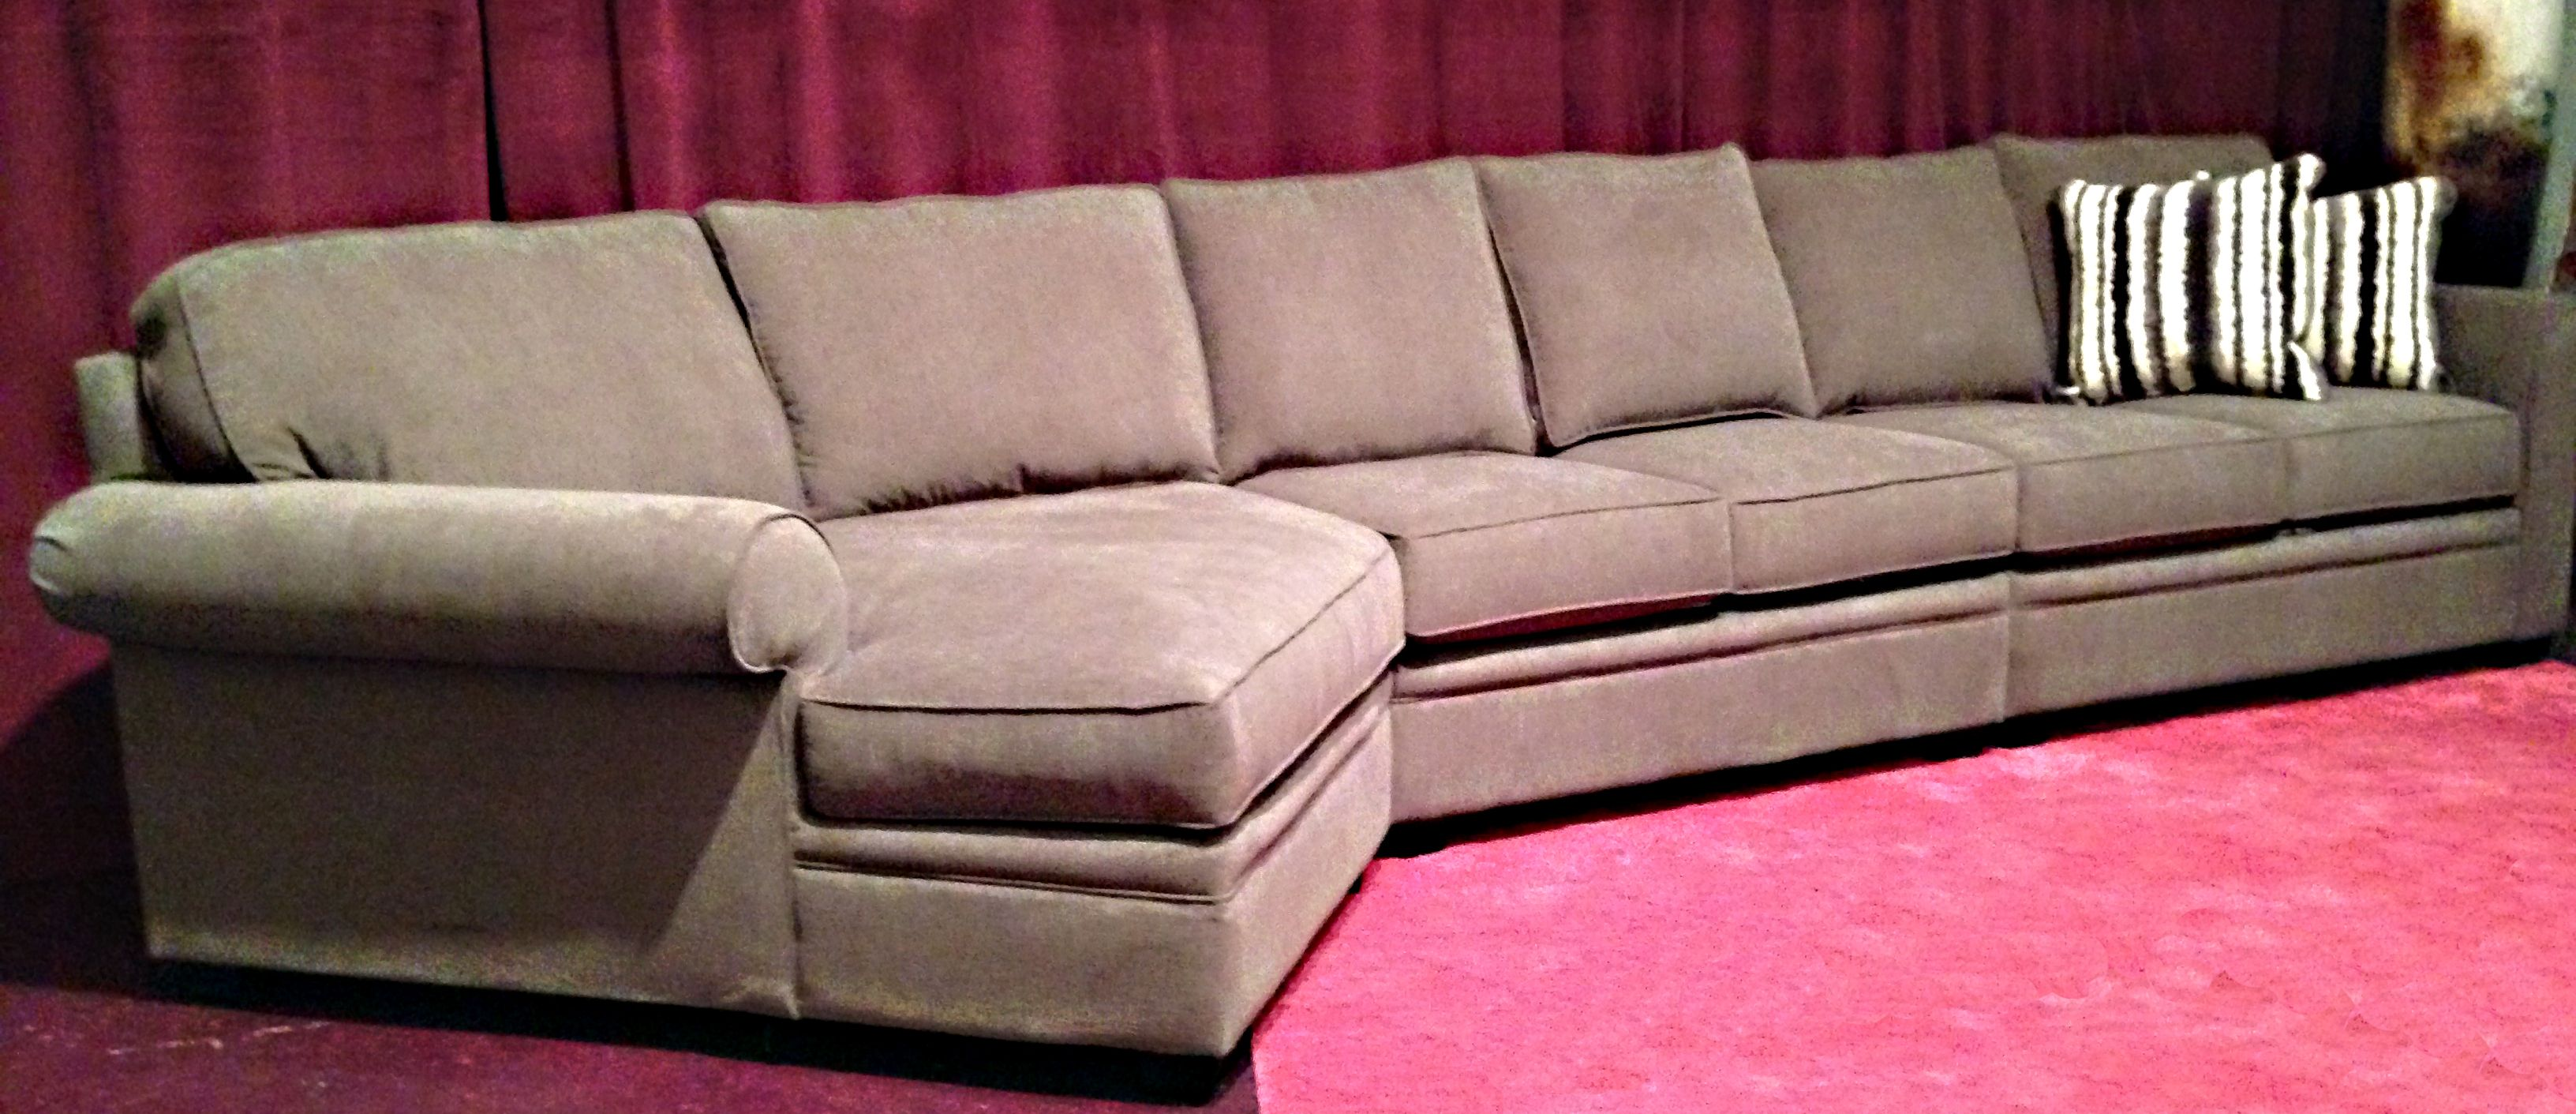 Cool Extra Long Sofa Fancy Extra Long Sofa 81 With Additional